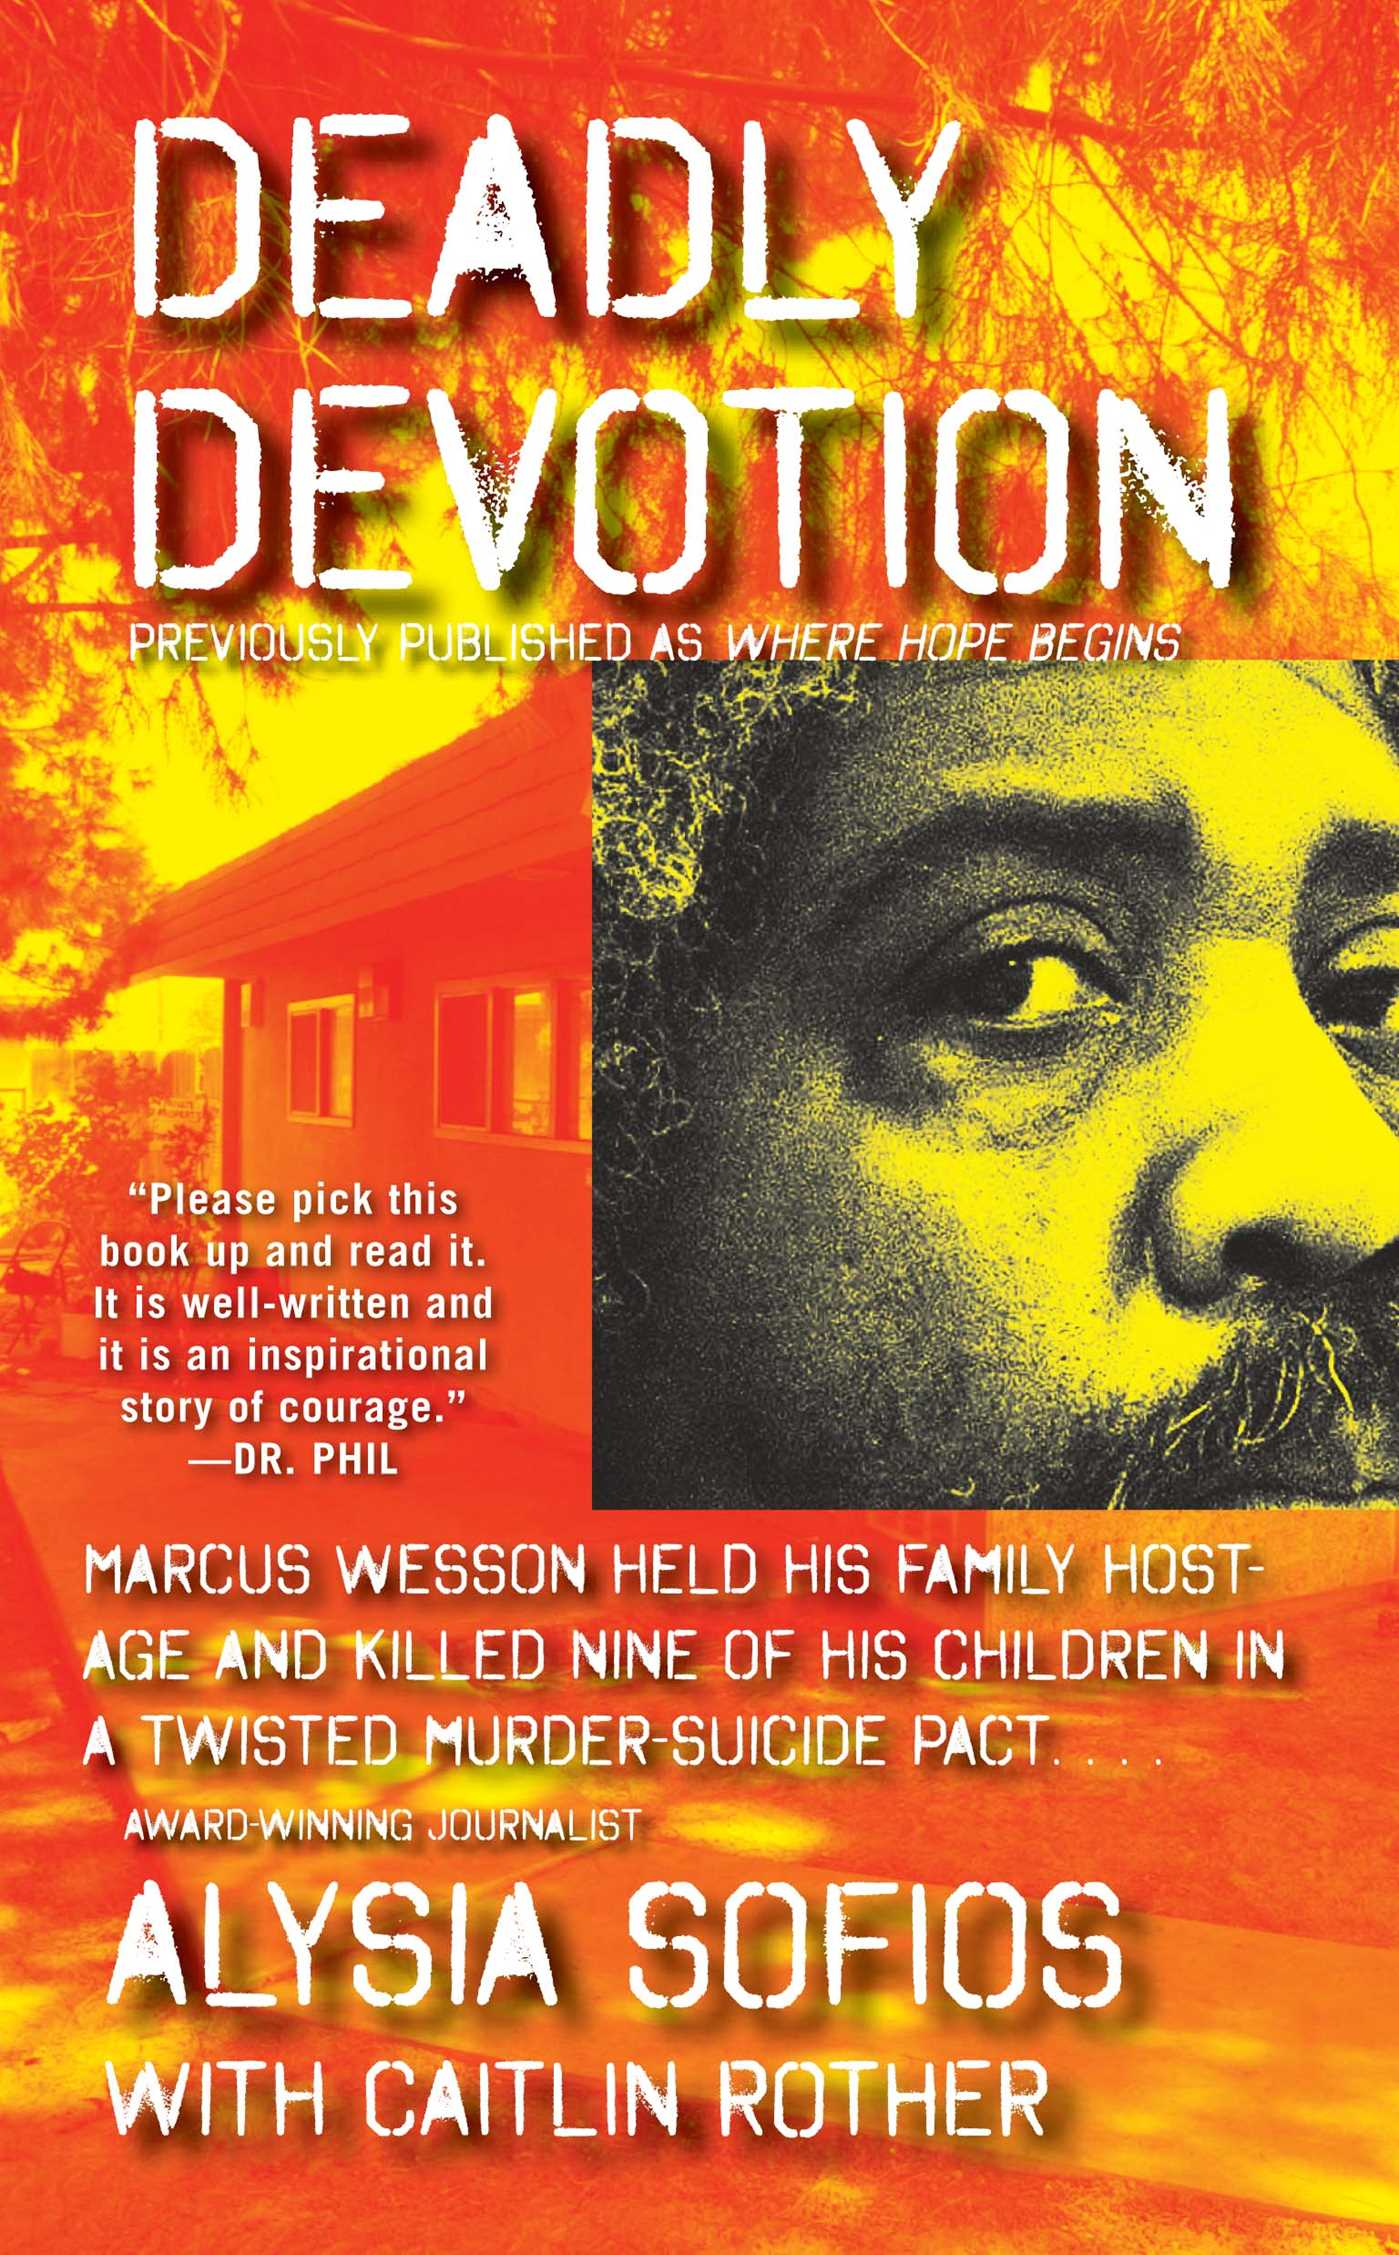 Deadly devotion 9781451665192 hr